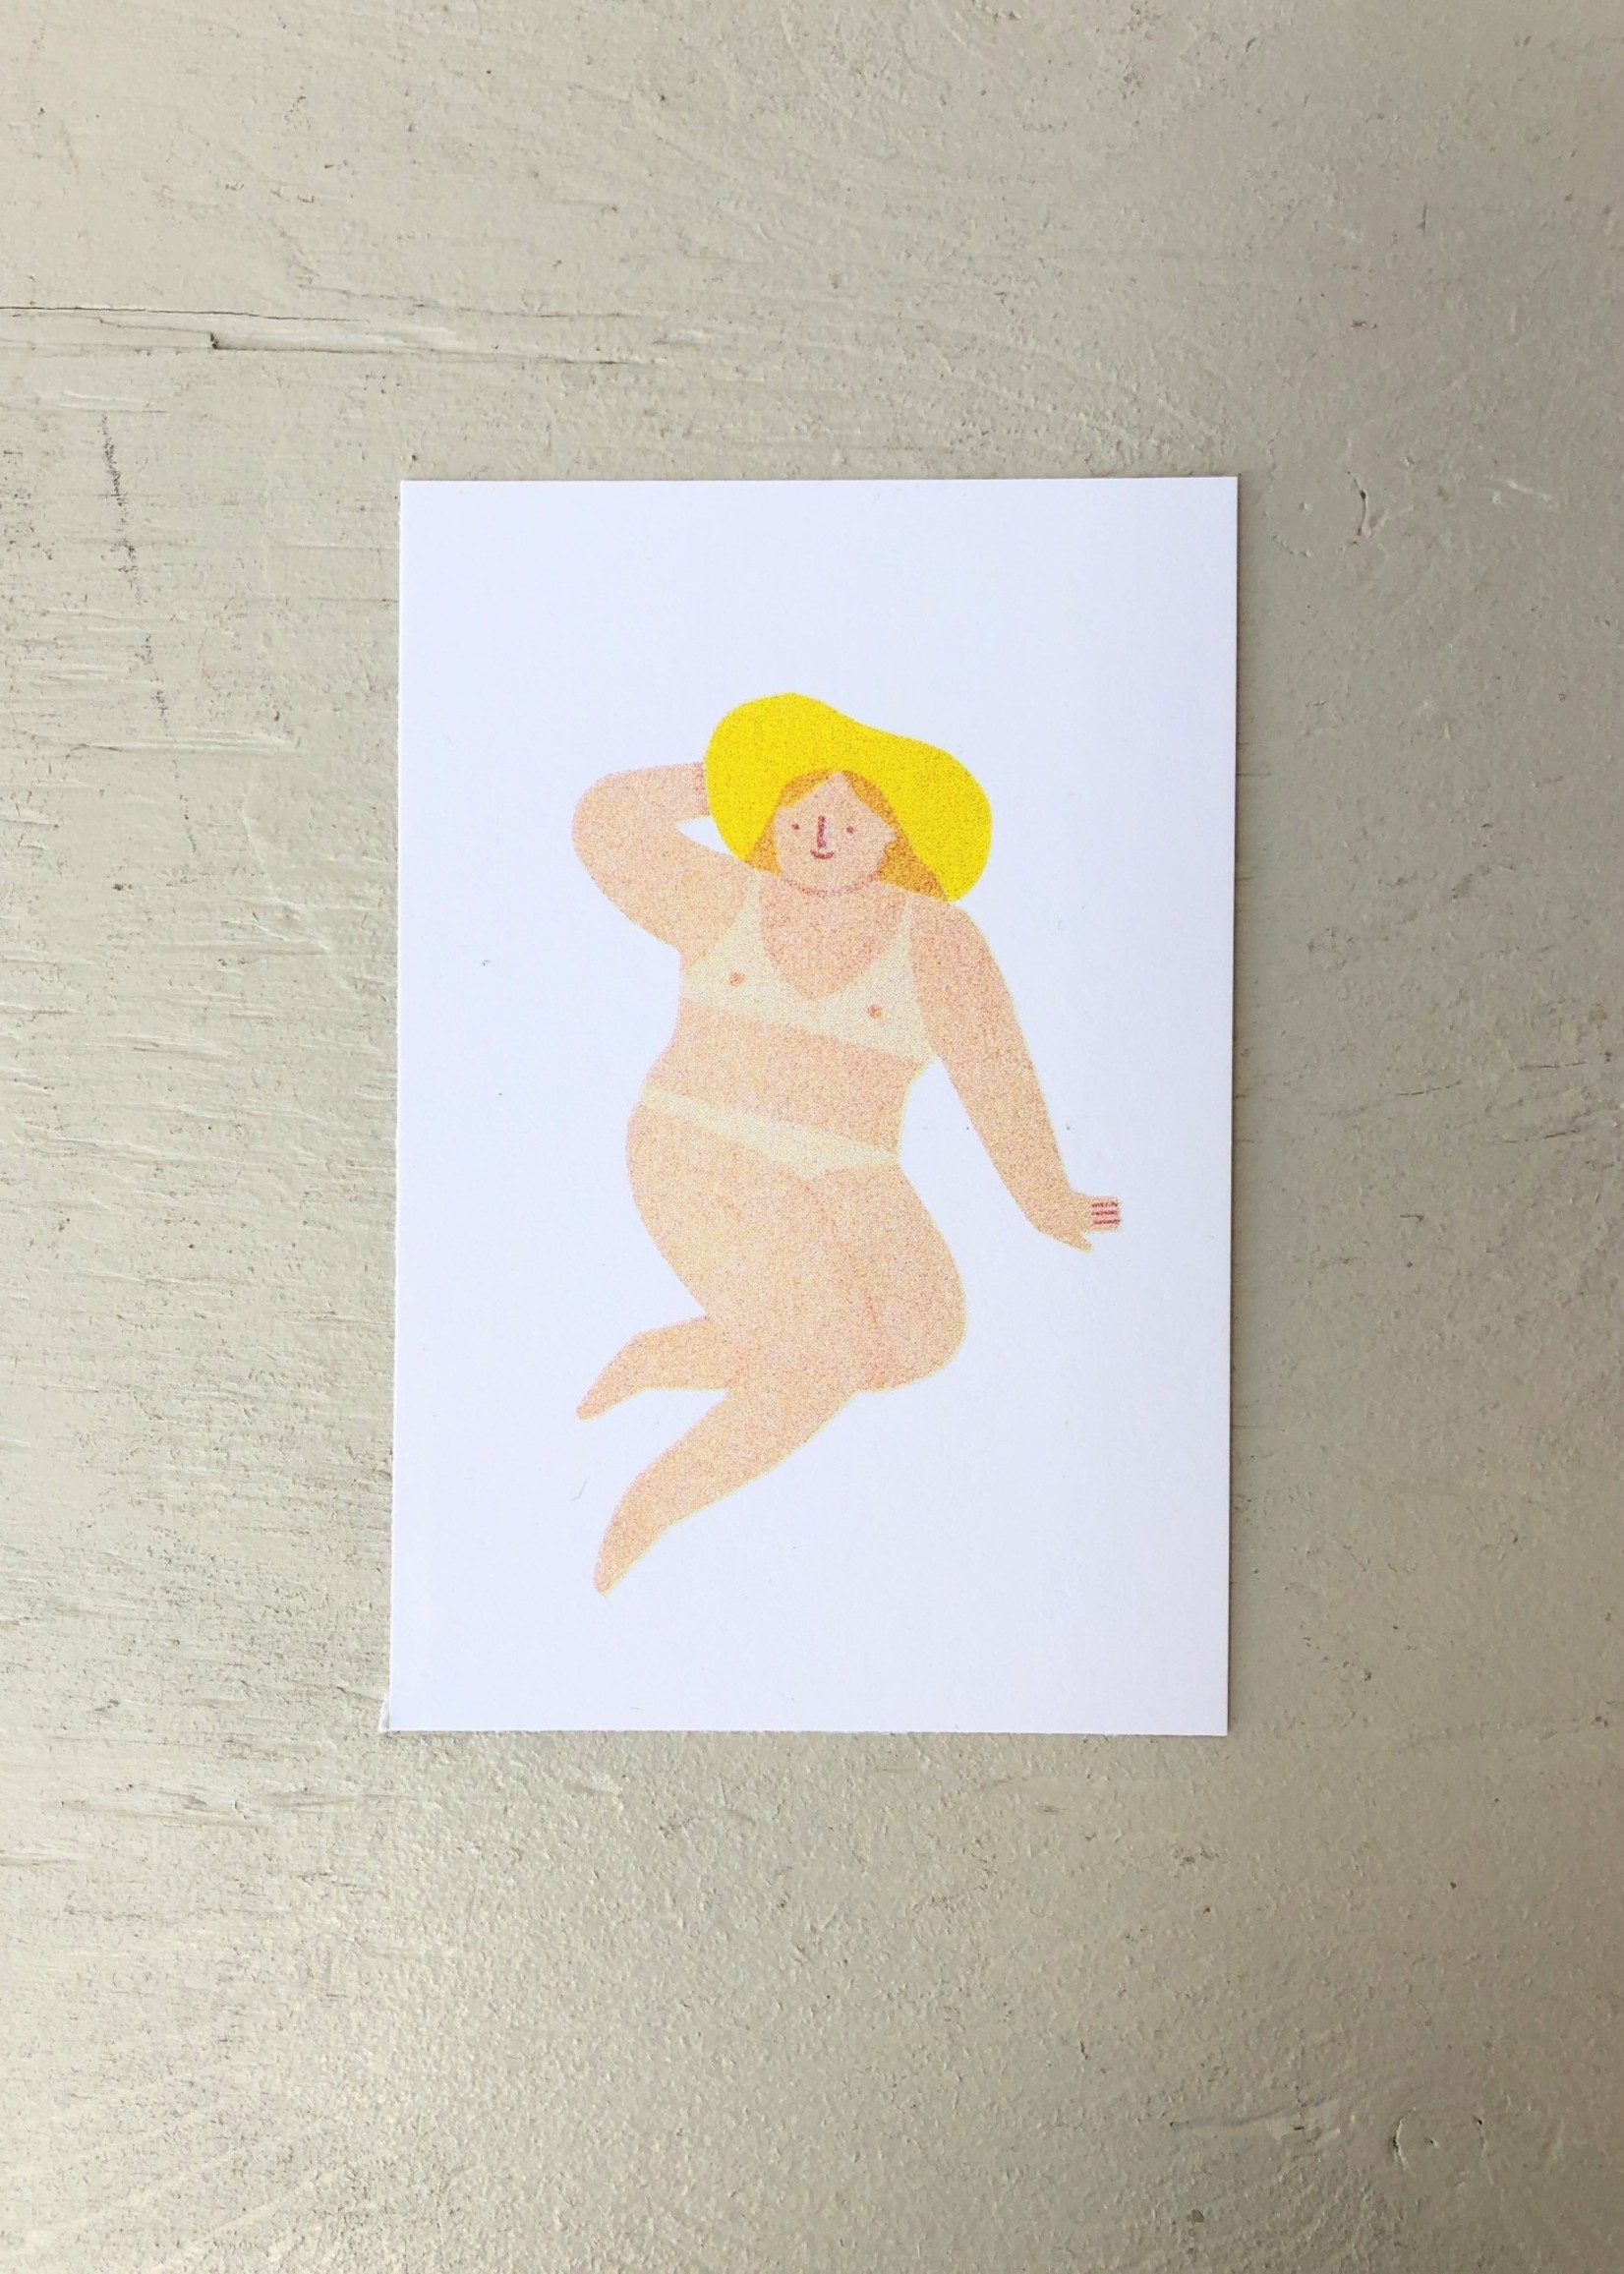 """Stay Home Club Sunbathers Risopgraph Prints by Stay Home Club, 4"""" x 6"""""""